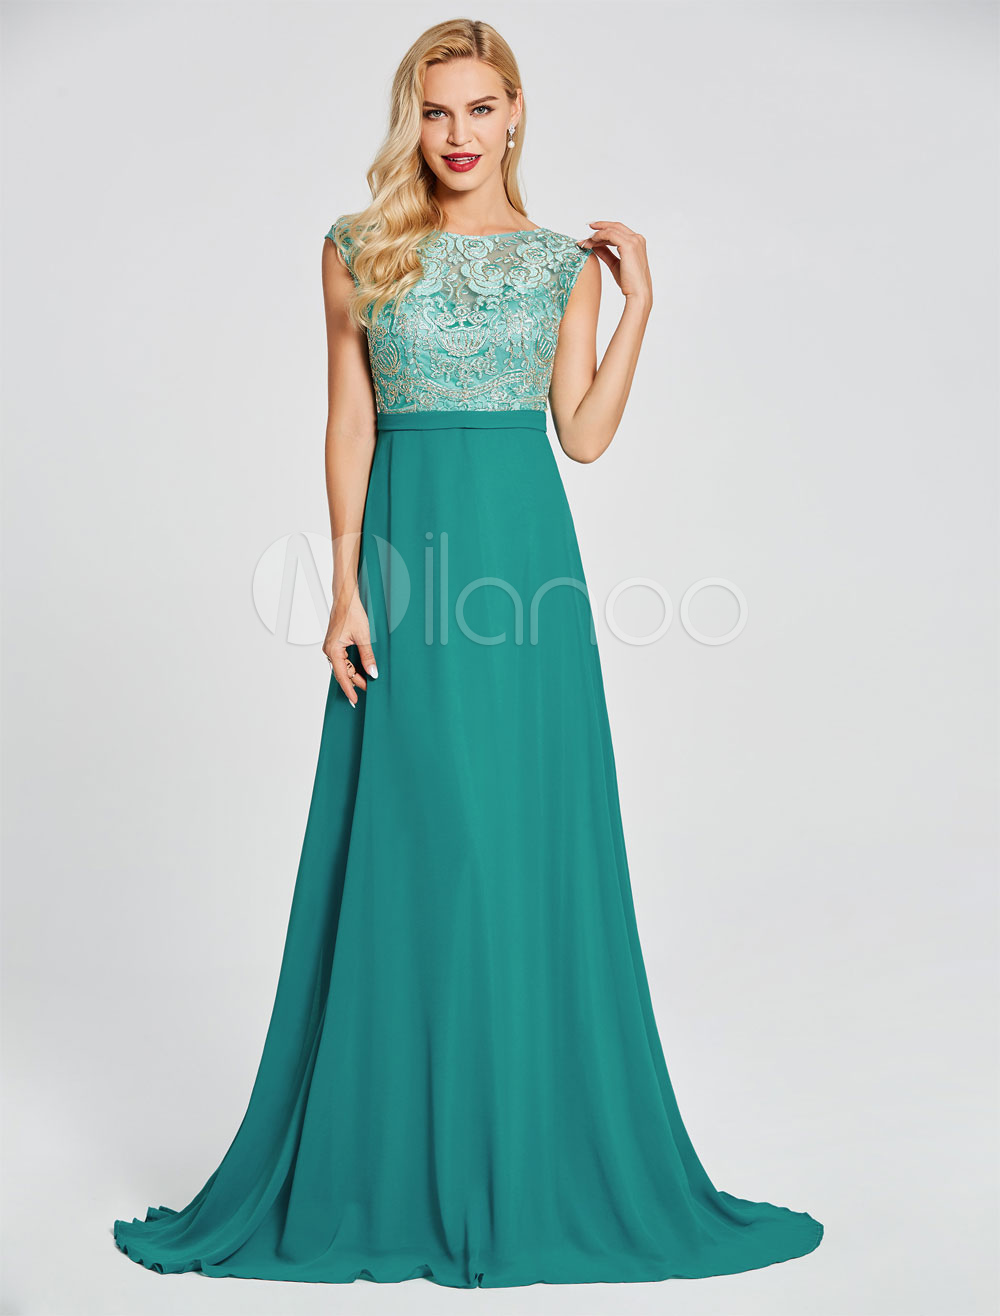 Prom Dresses Green Lace Chiffon Evening Gown Sleeveless V Back Wedding Guest Dress With Train (Evening Dresses) photo